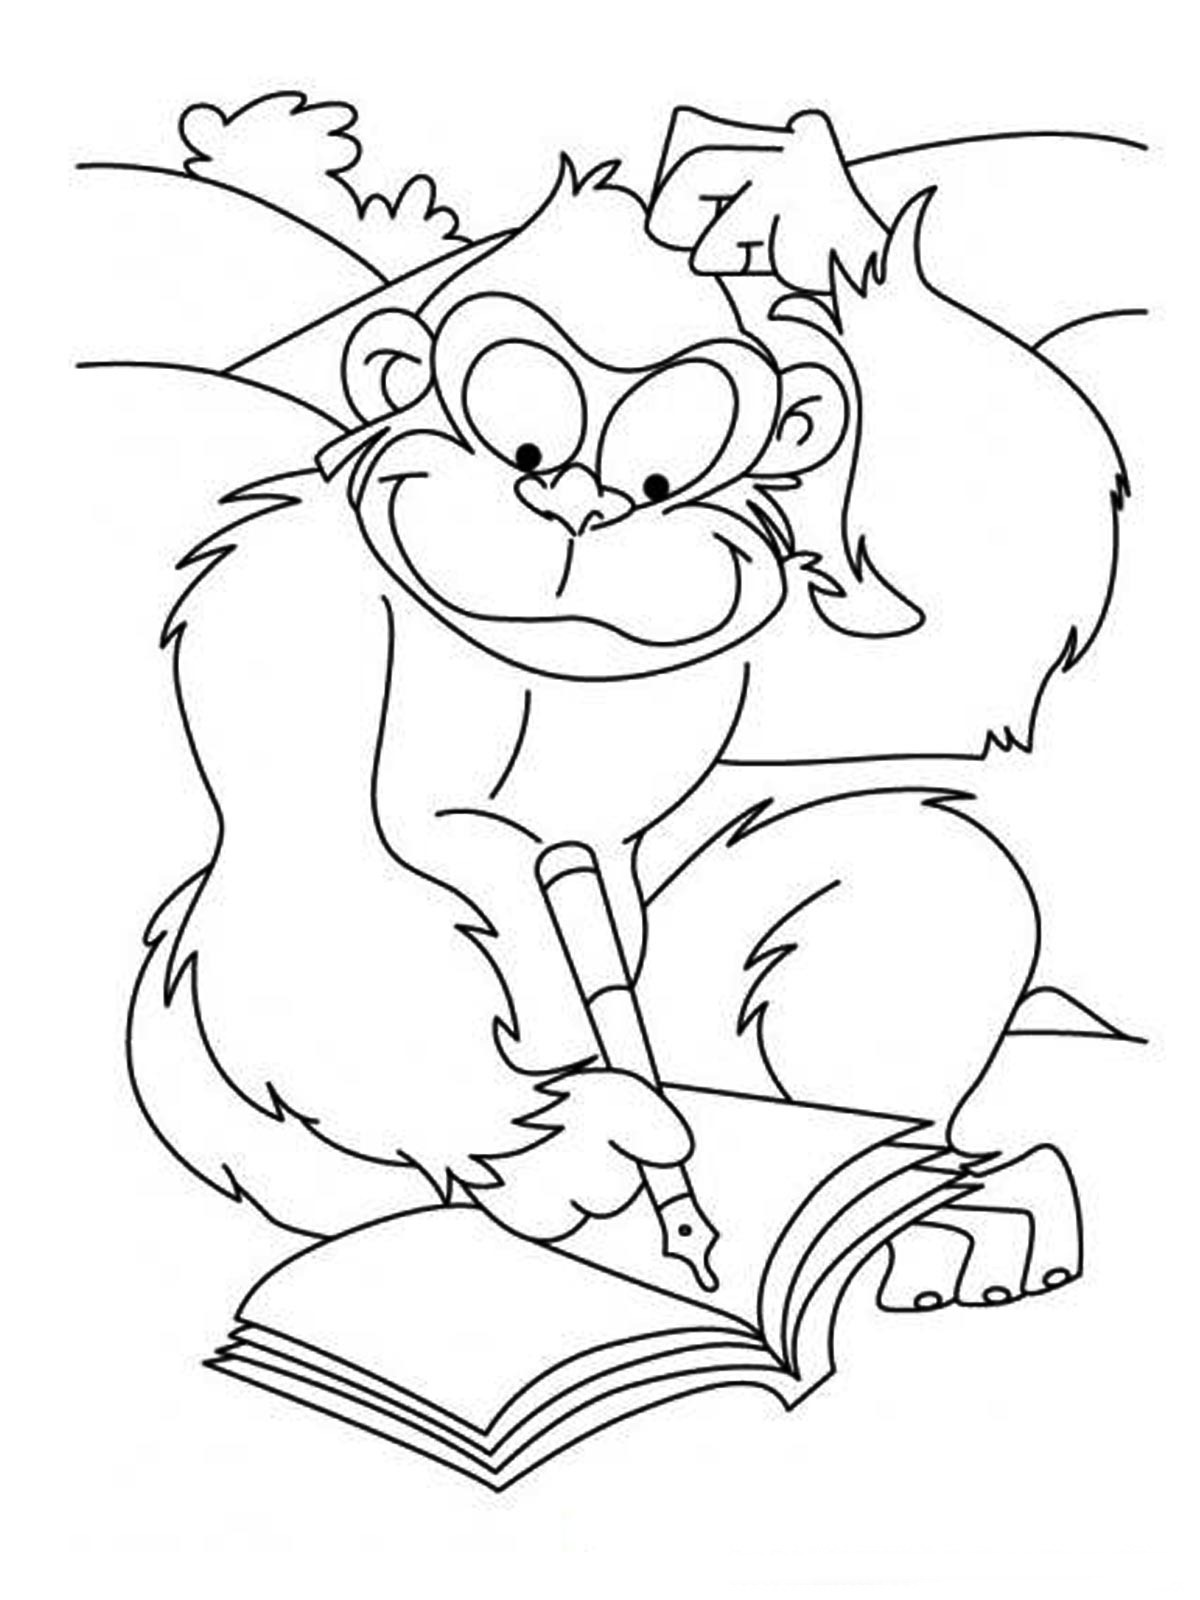 humerous coloring pages - photo#21